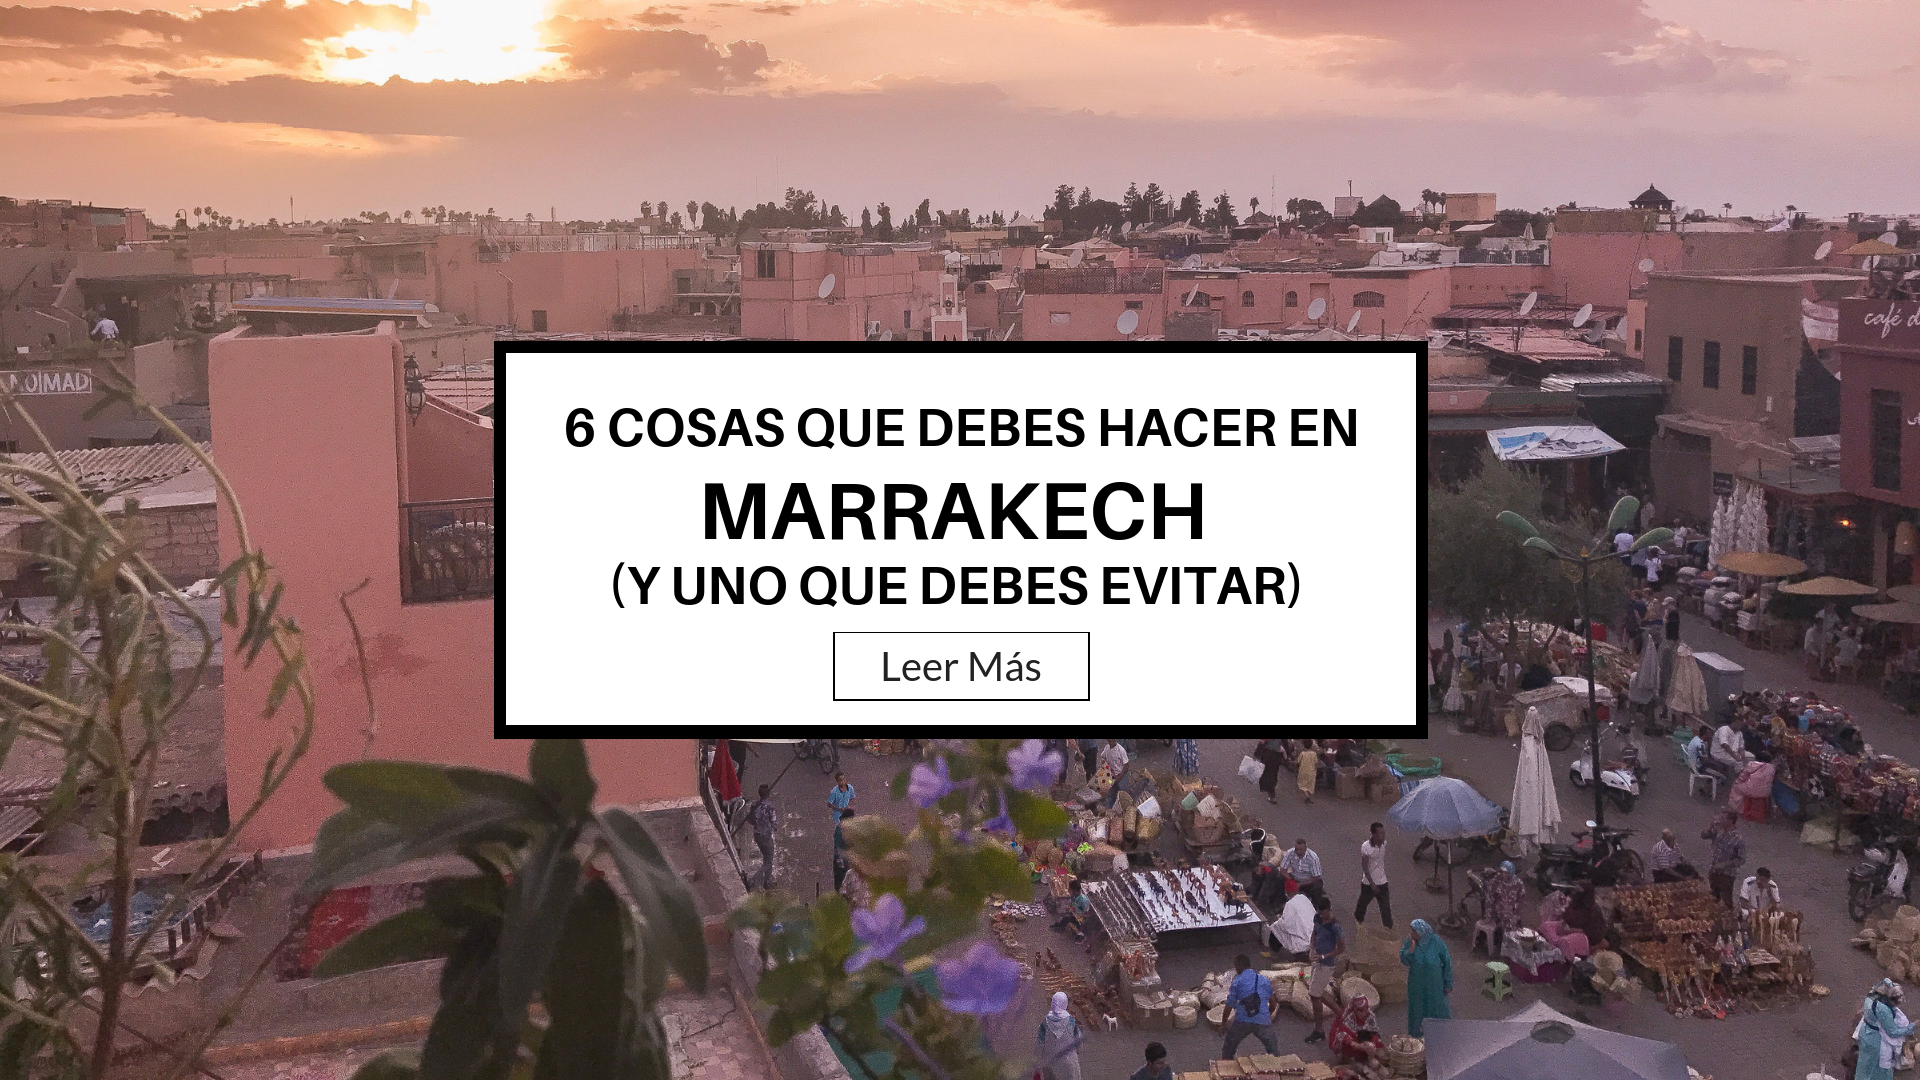 MarrakechGraphic_ES.png